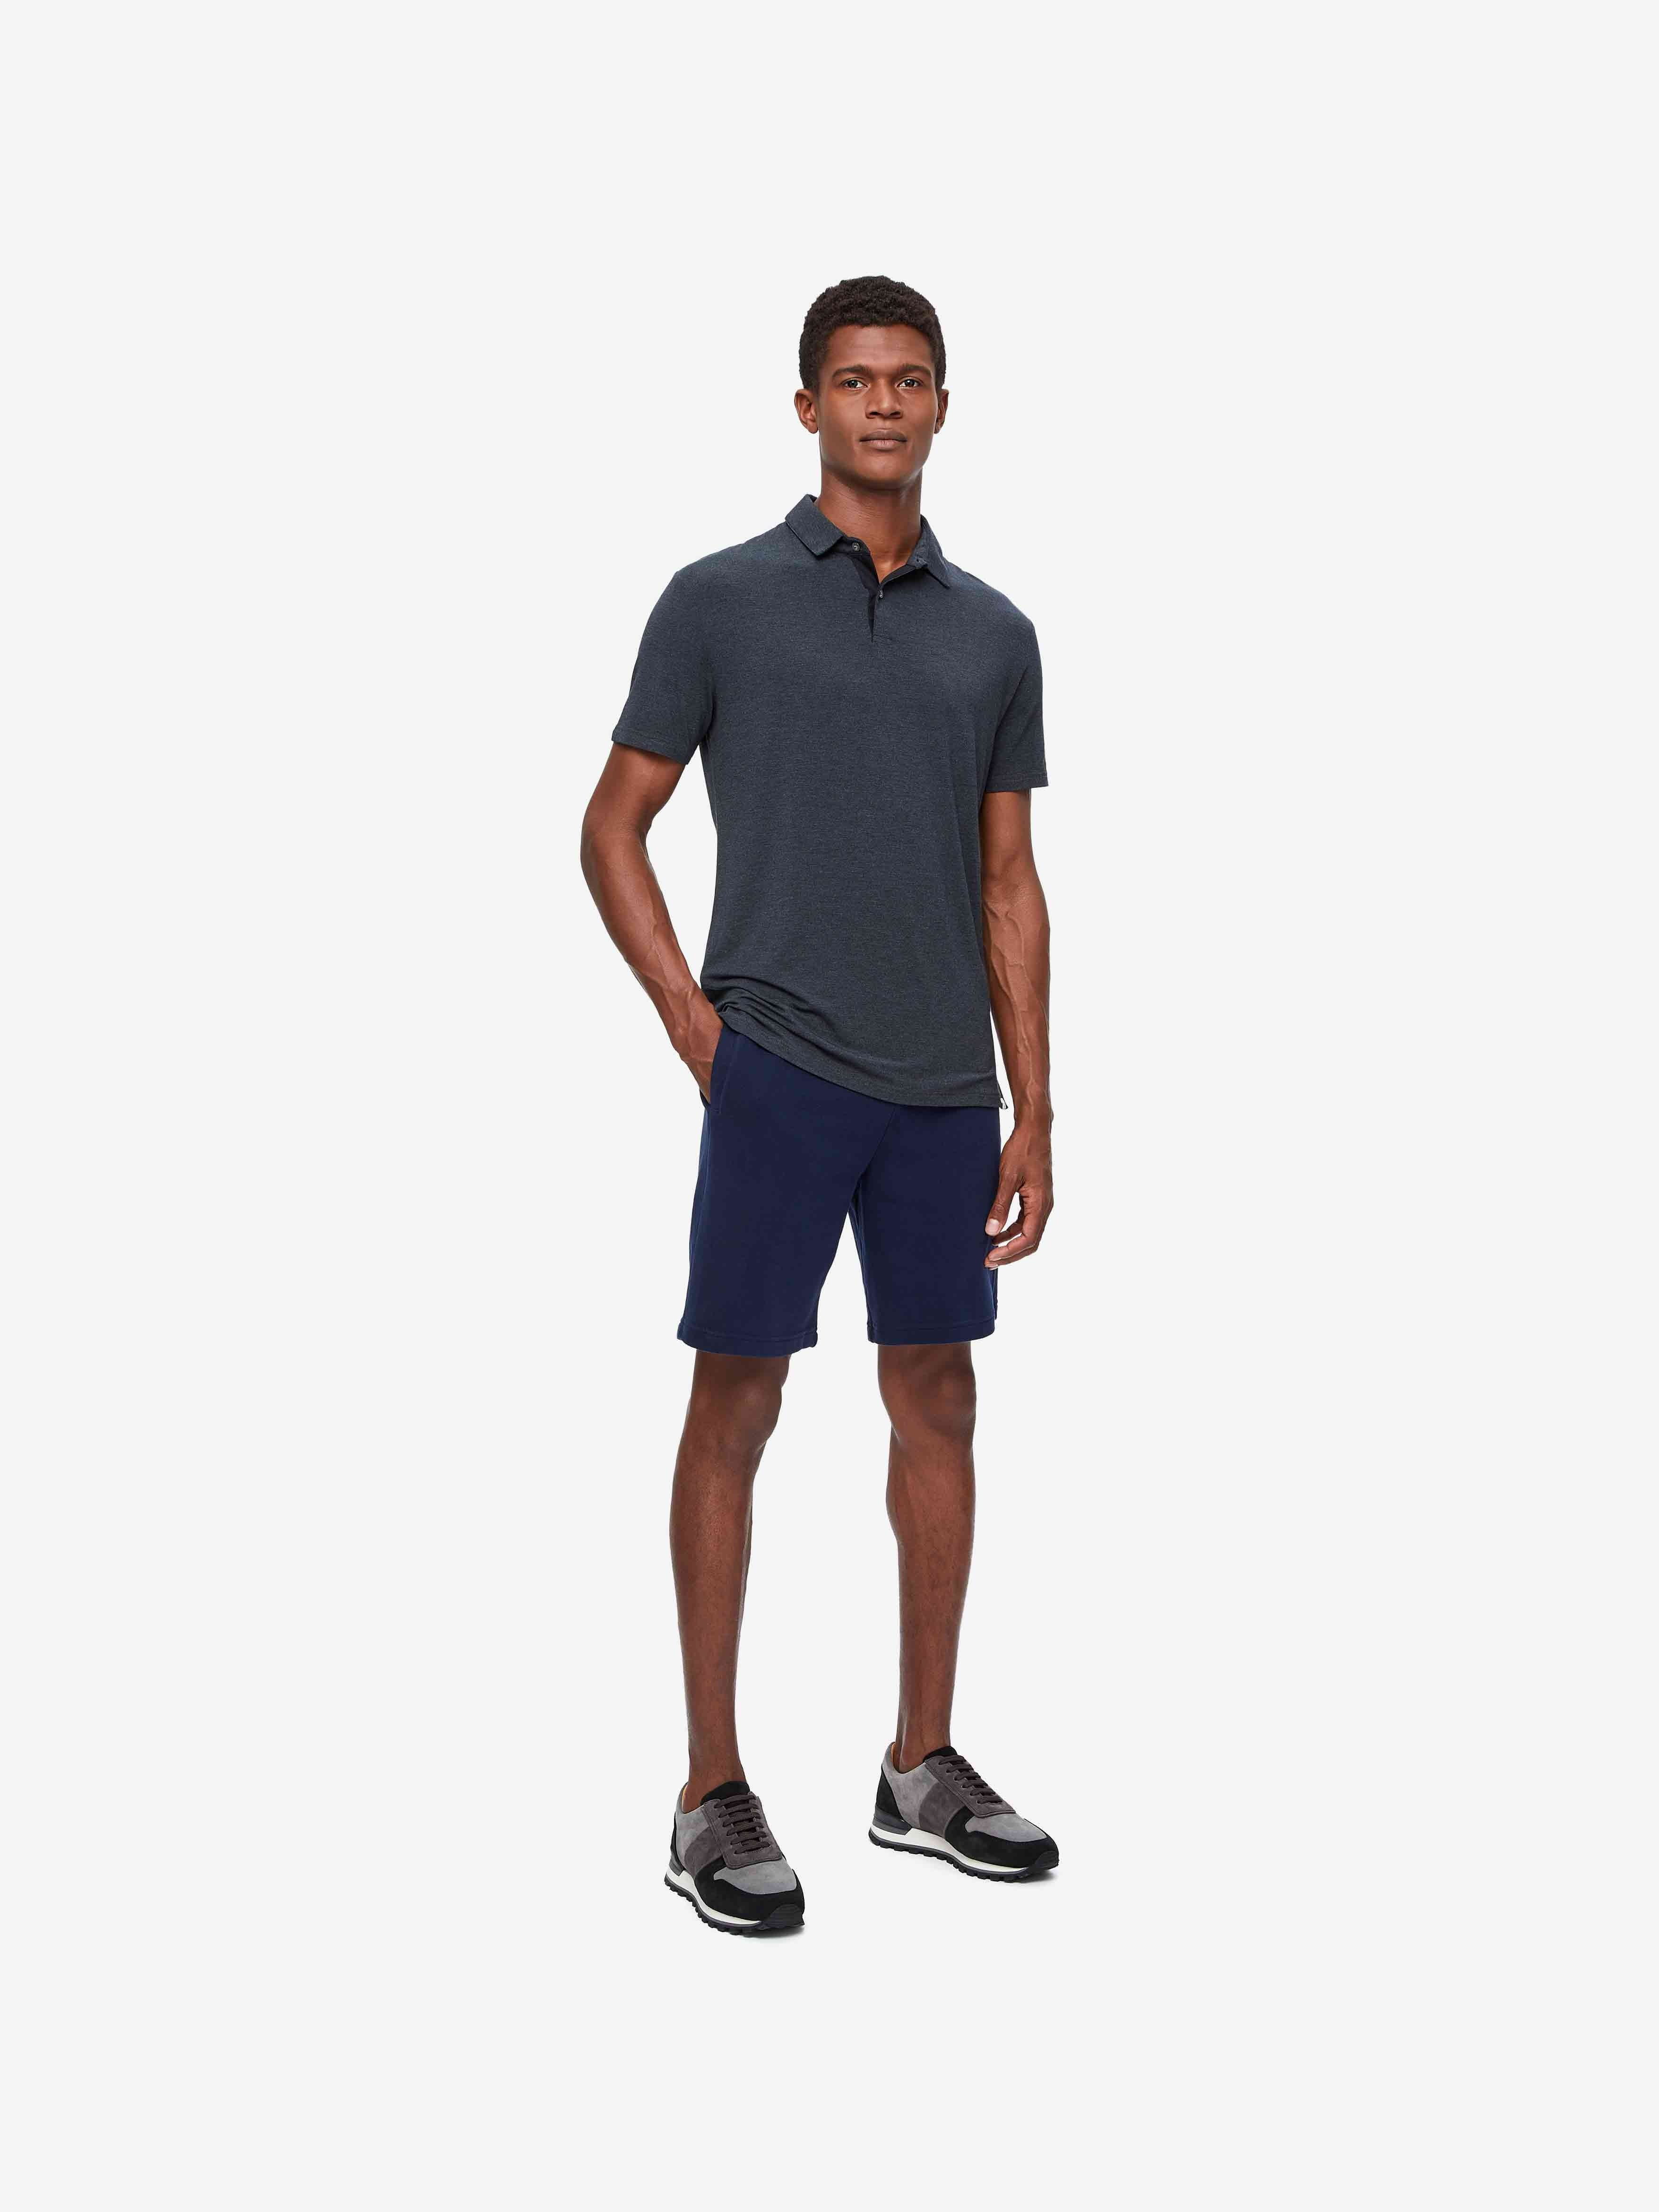 Men's Polo Shirt Marlowe Micro Modal Stretch Anthracite